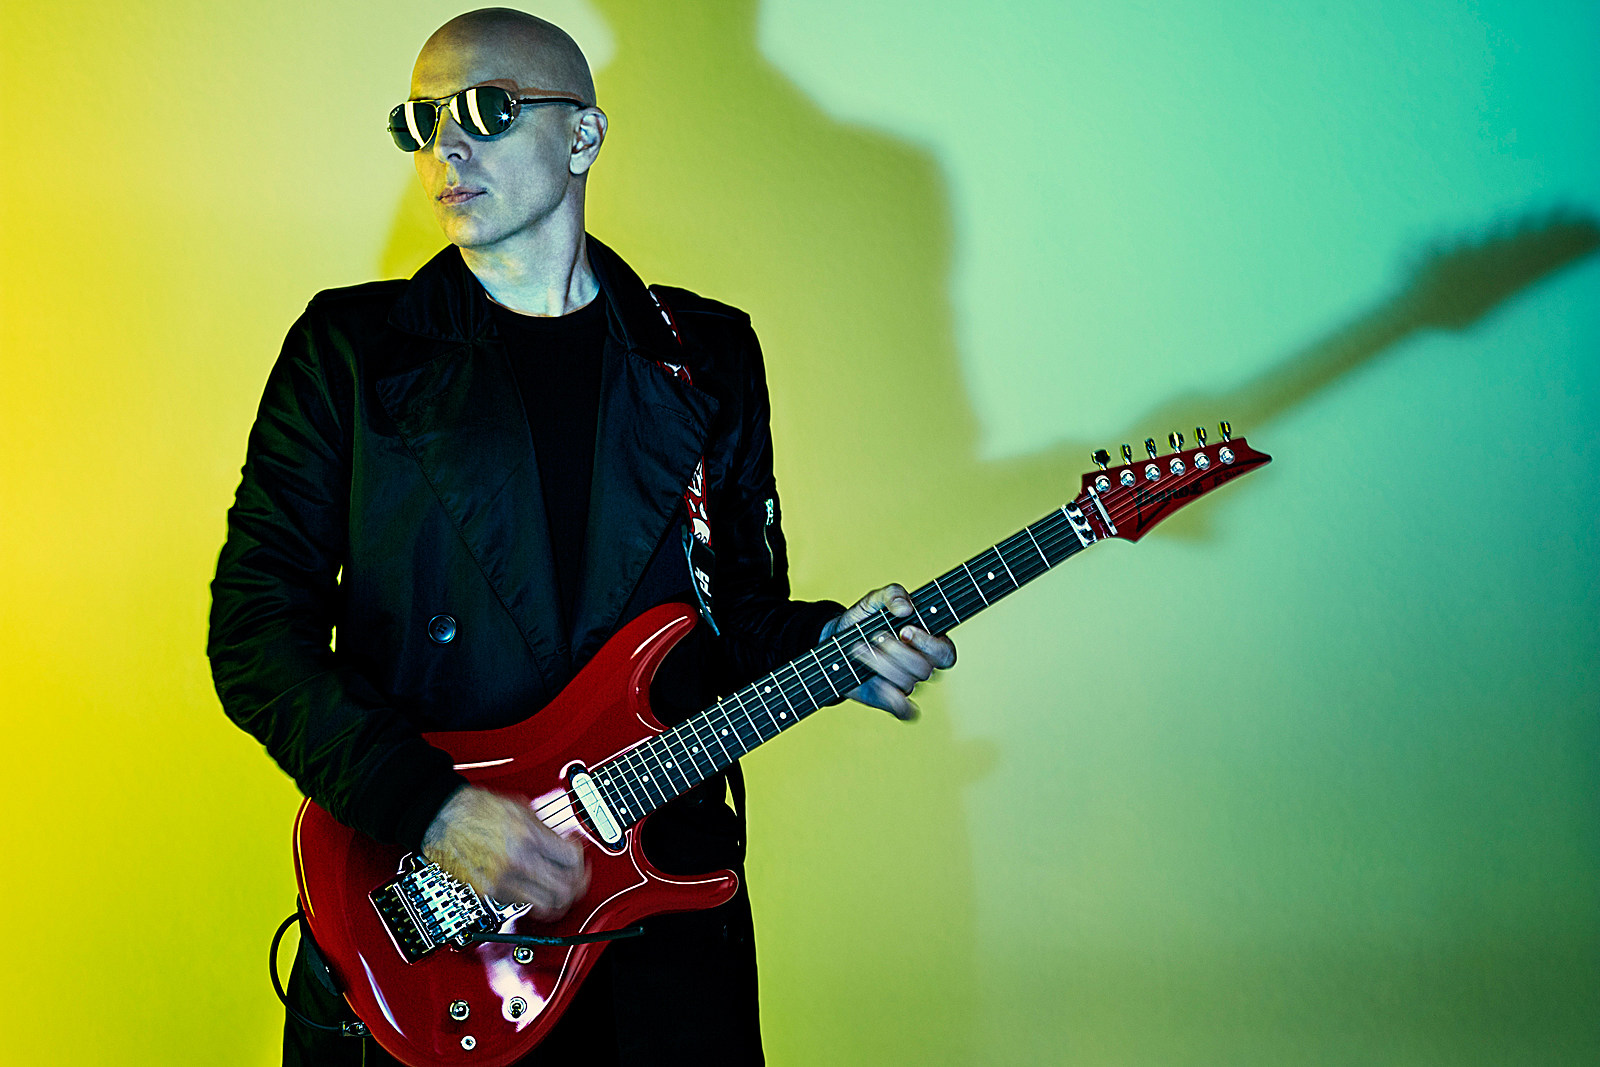 Joe Satriani New Lp Inspired By Urge To Do Something Different